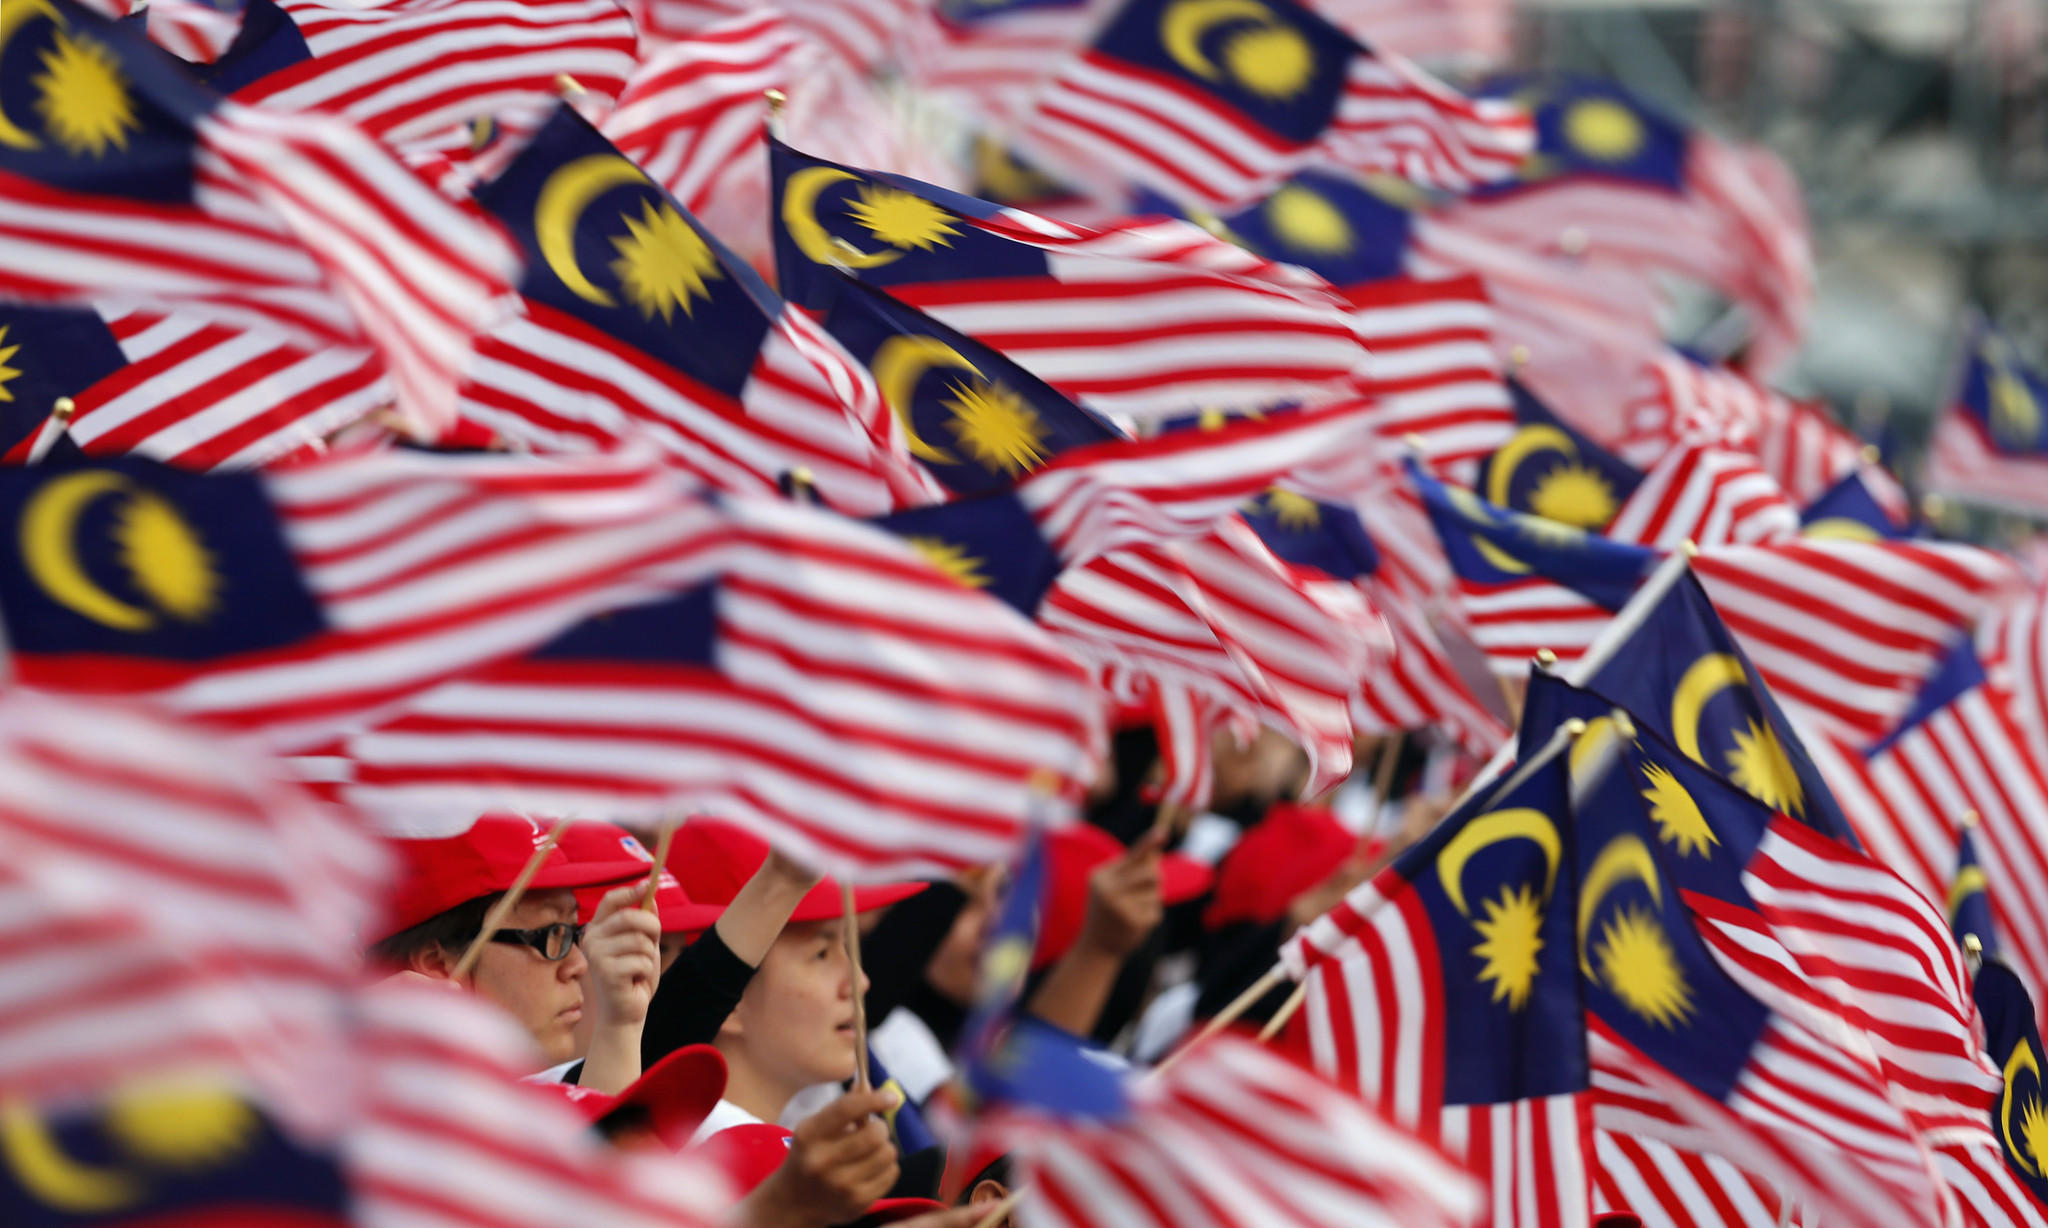 Malaysian flags dwave uring National Day celebrations marking the 56th anniversary of the country's independence.